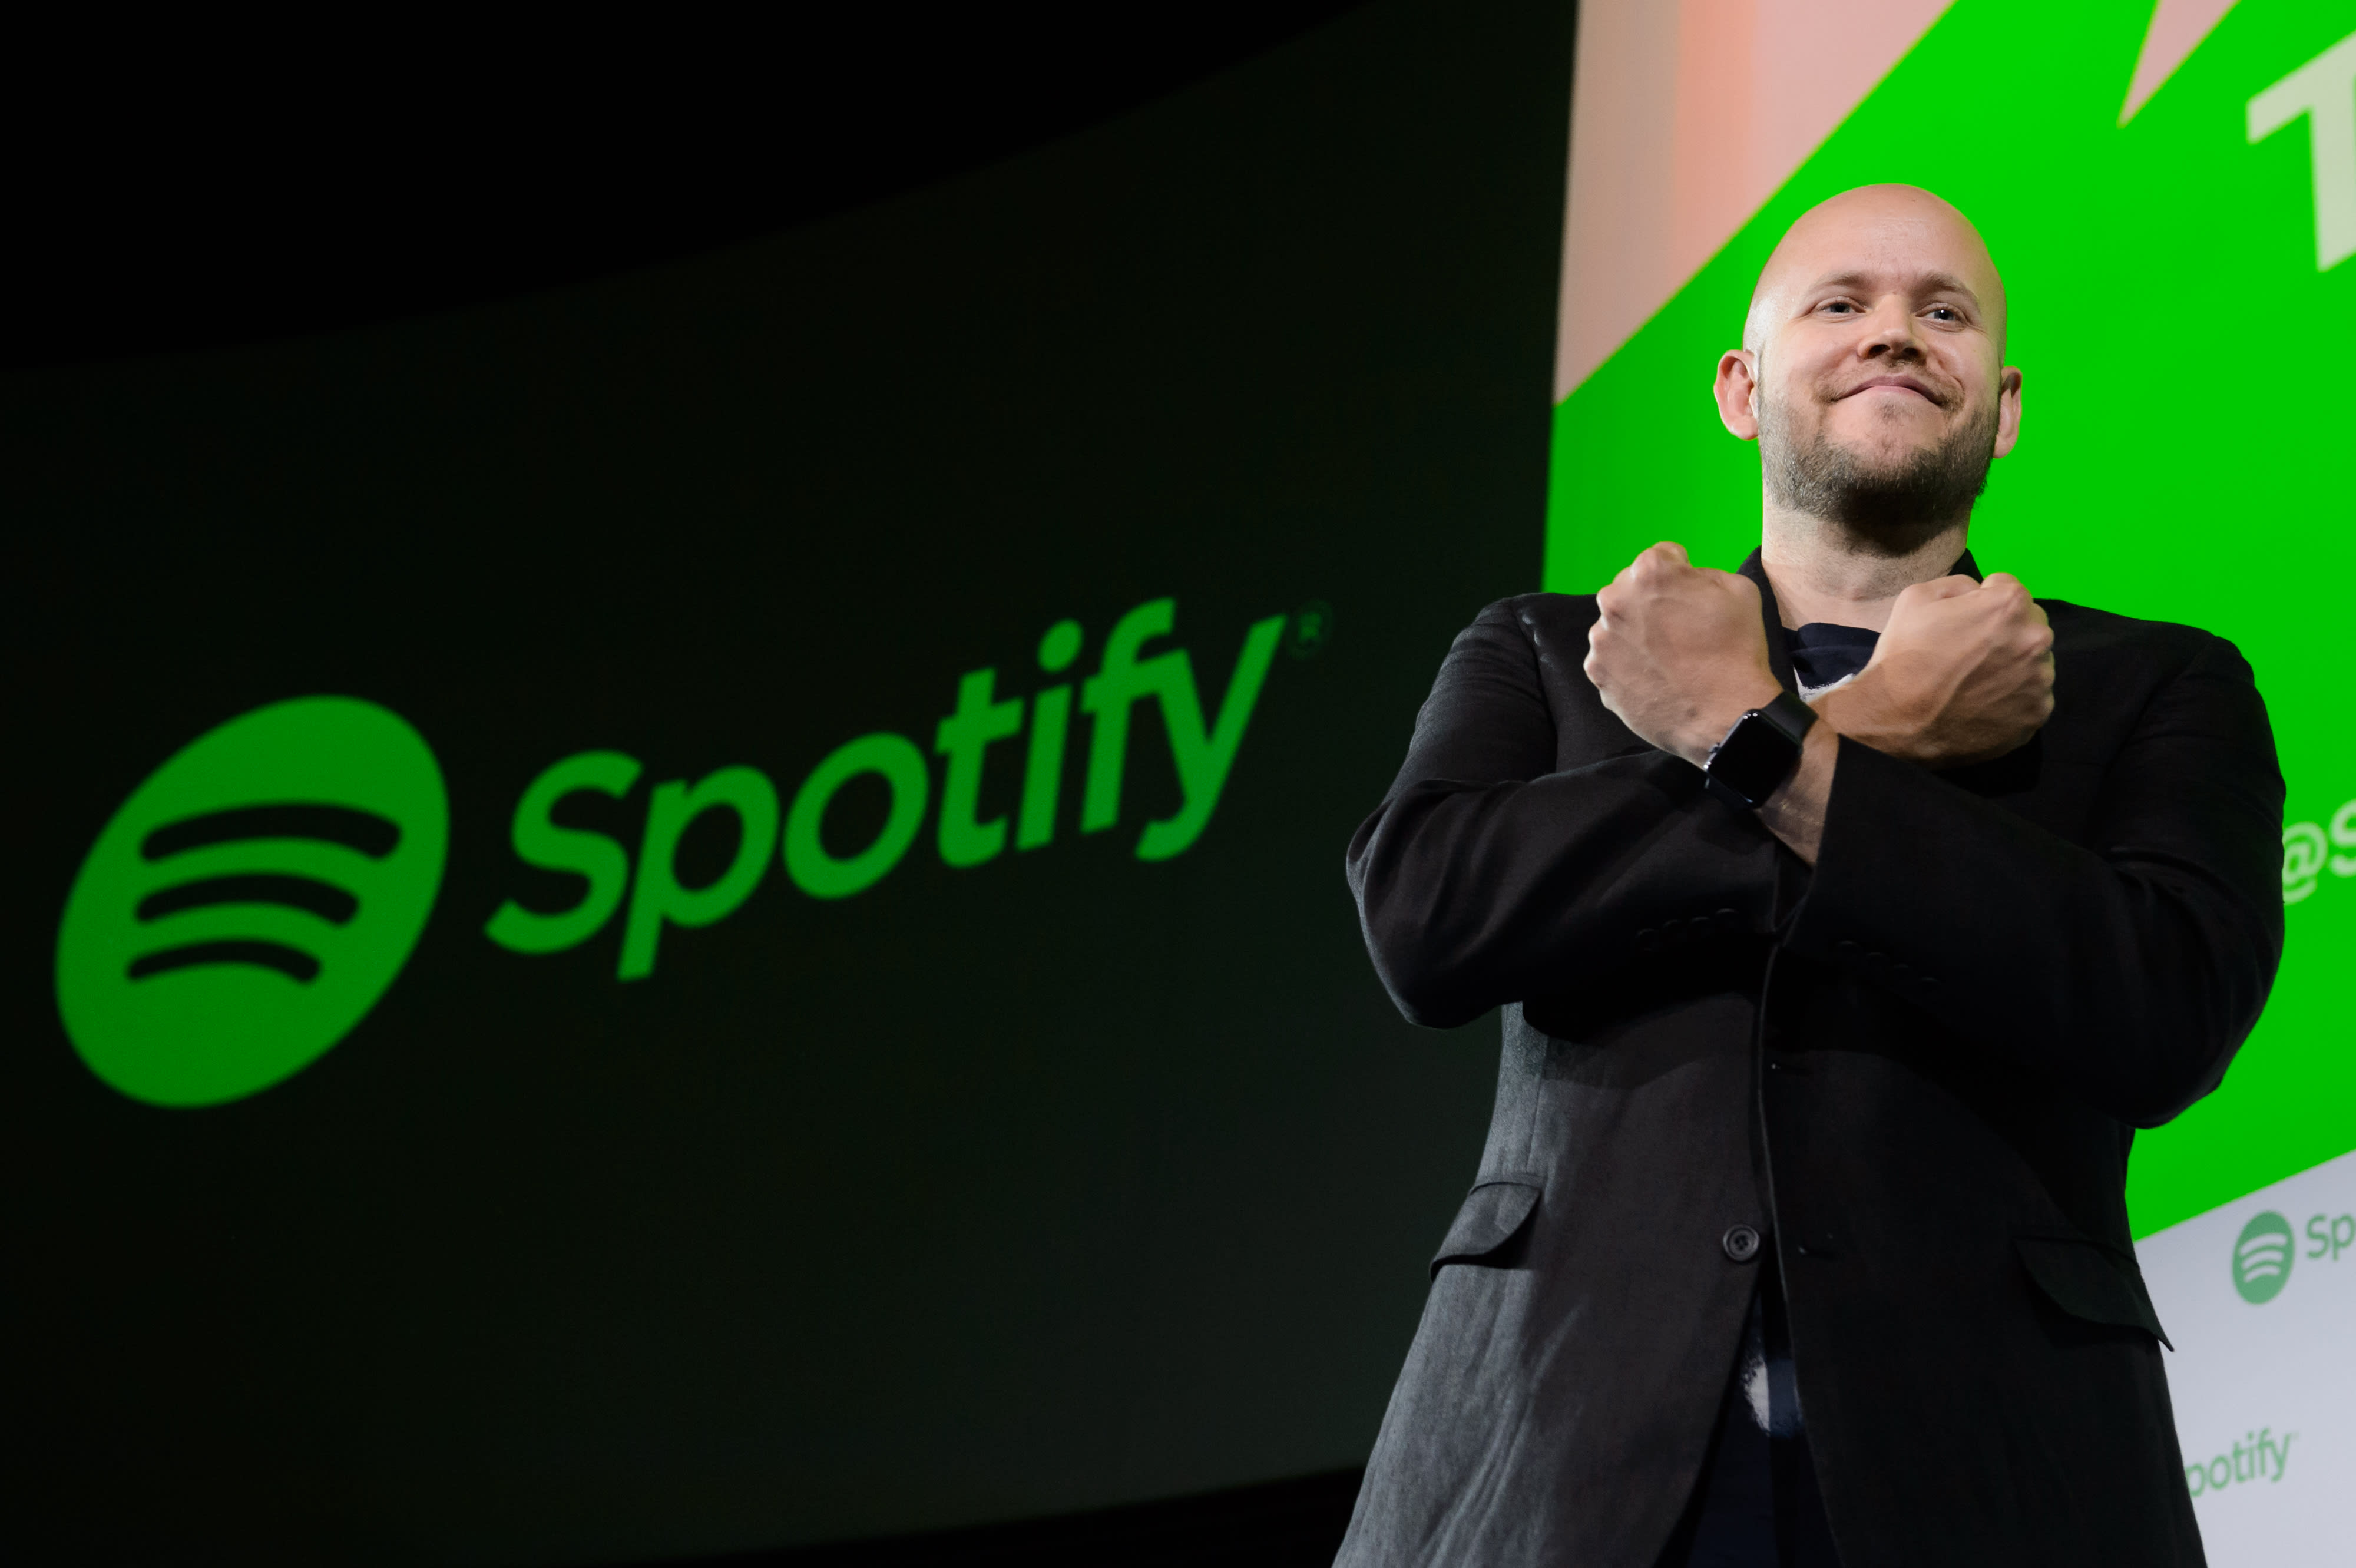 Spotify's CEO Daniel Ek poses at a conference